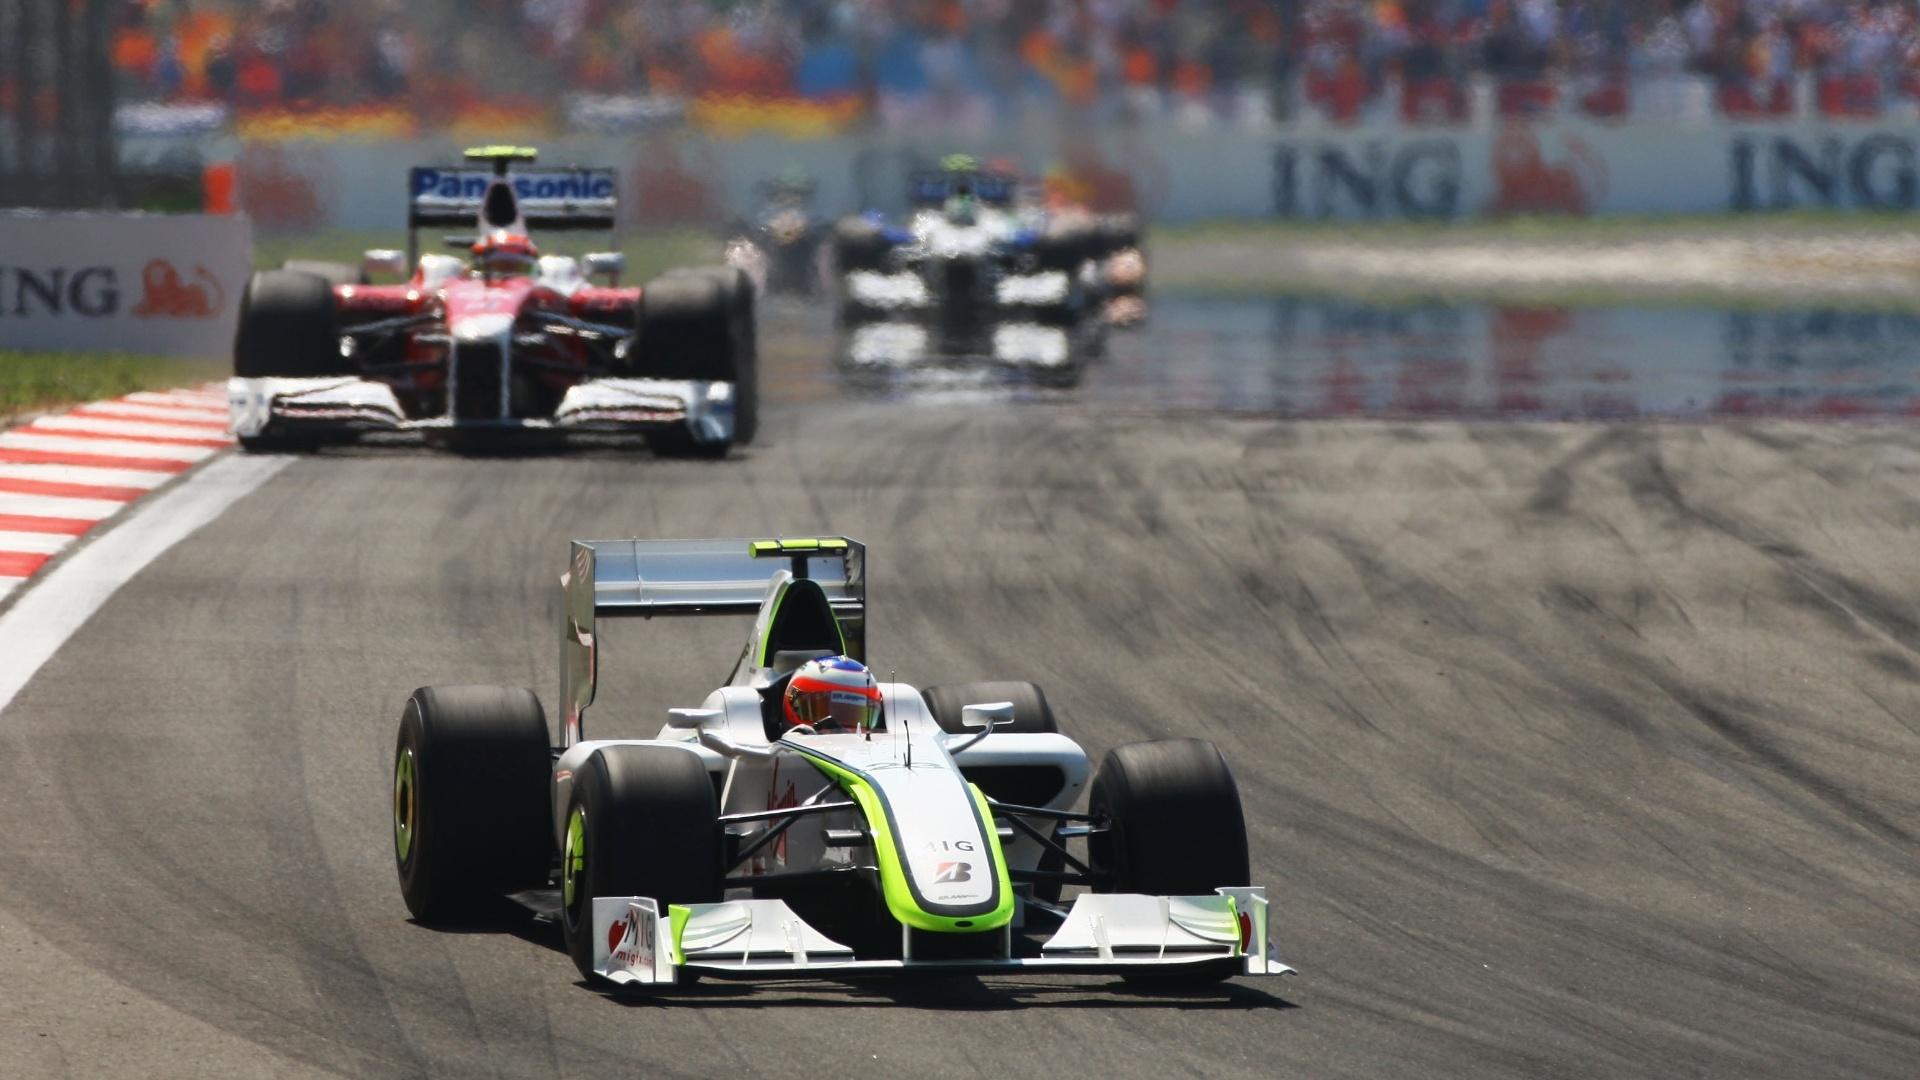 Em 2009, Barrichello guiava pela Brawn, que tinha o melhor carro da temporada. Mas, no GP da Turquia, ao tentar ultrpassar Jenson Button, sua embreagem quebrou e o brasileiro teve de abandonar, deixando o companheiro de equipe abrir 27 pontos